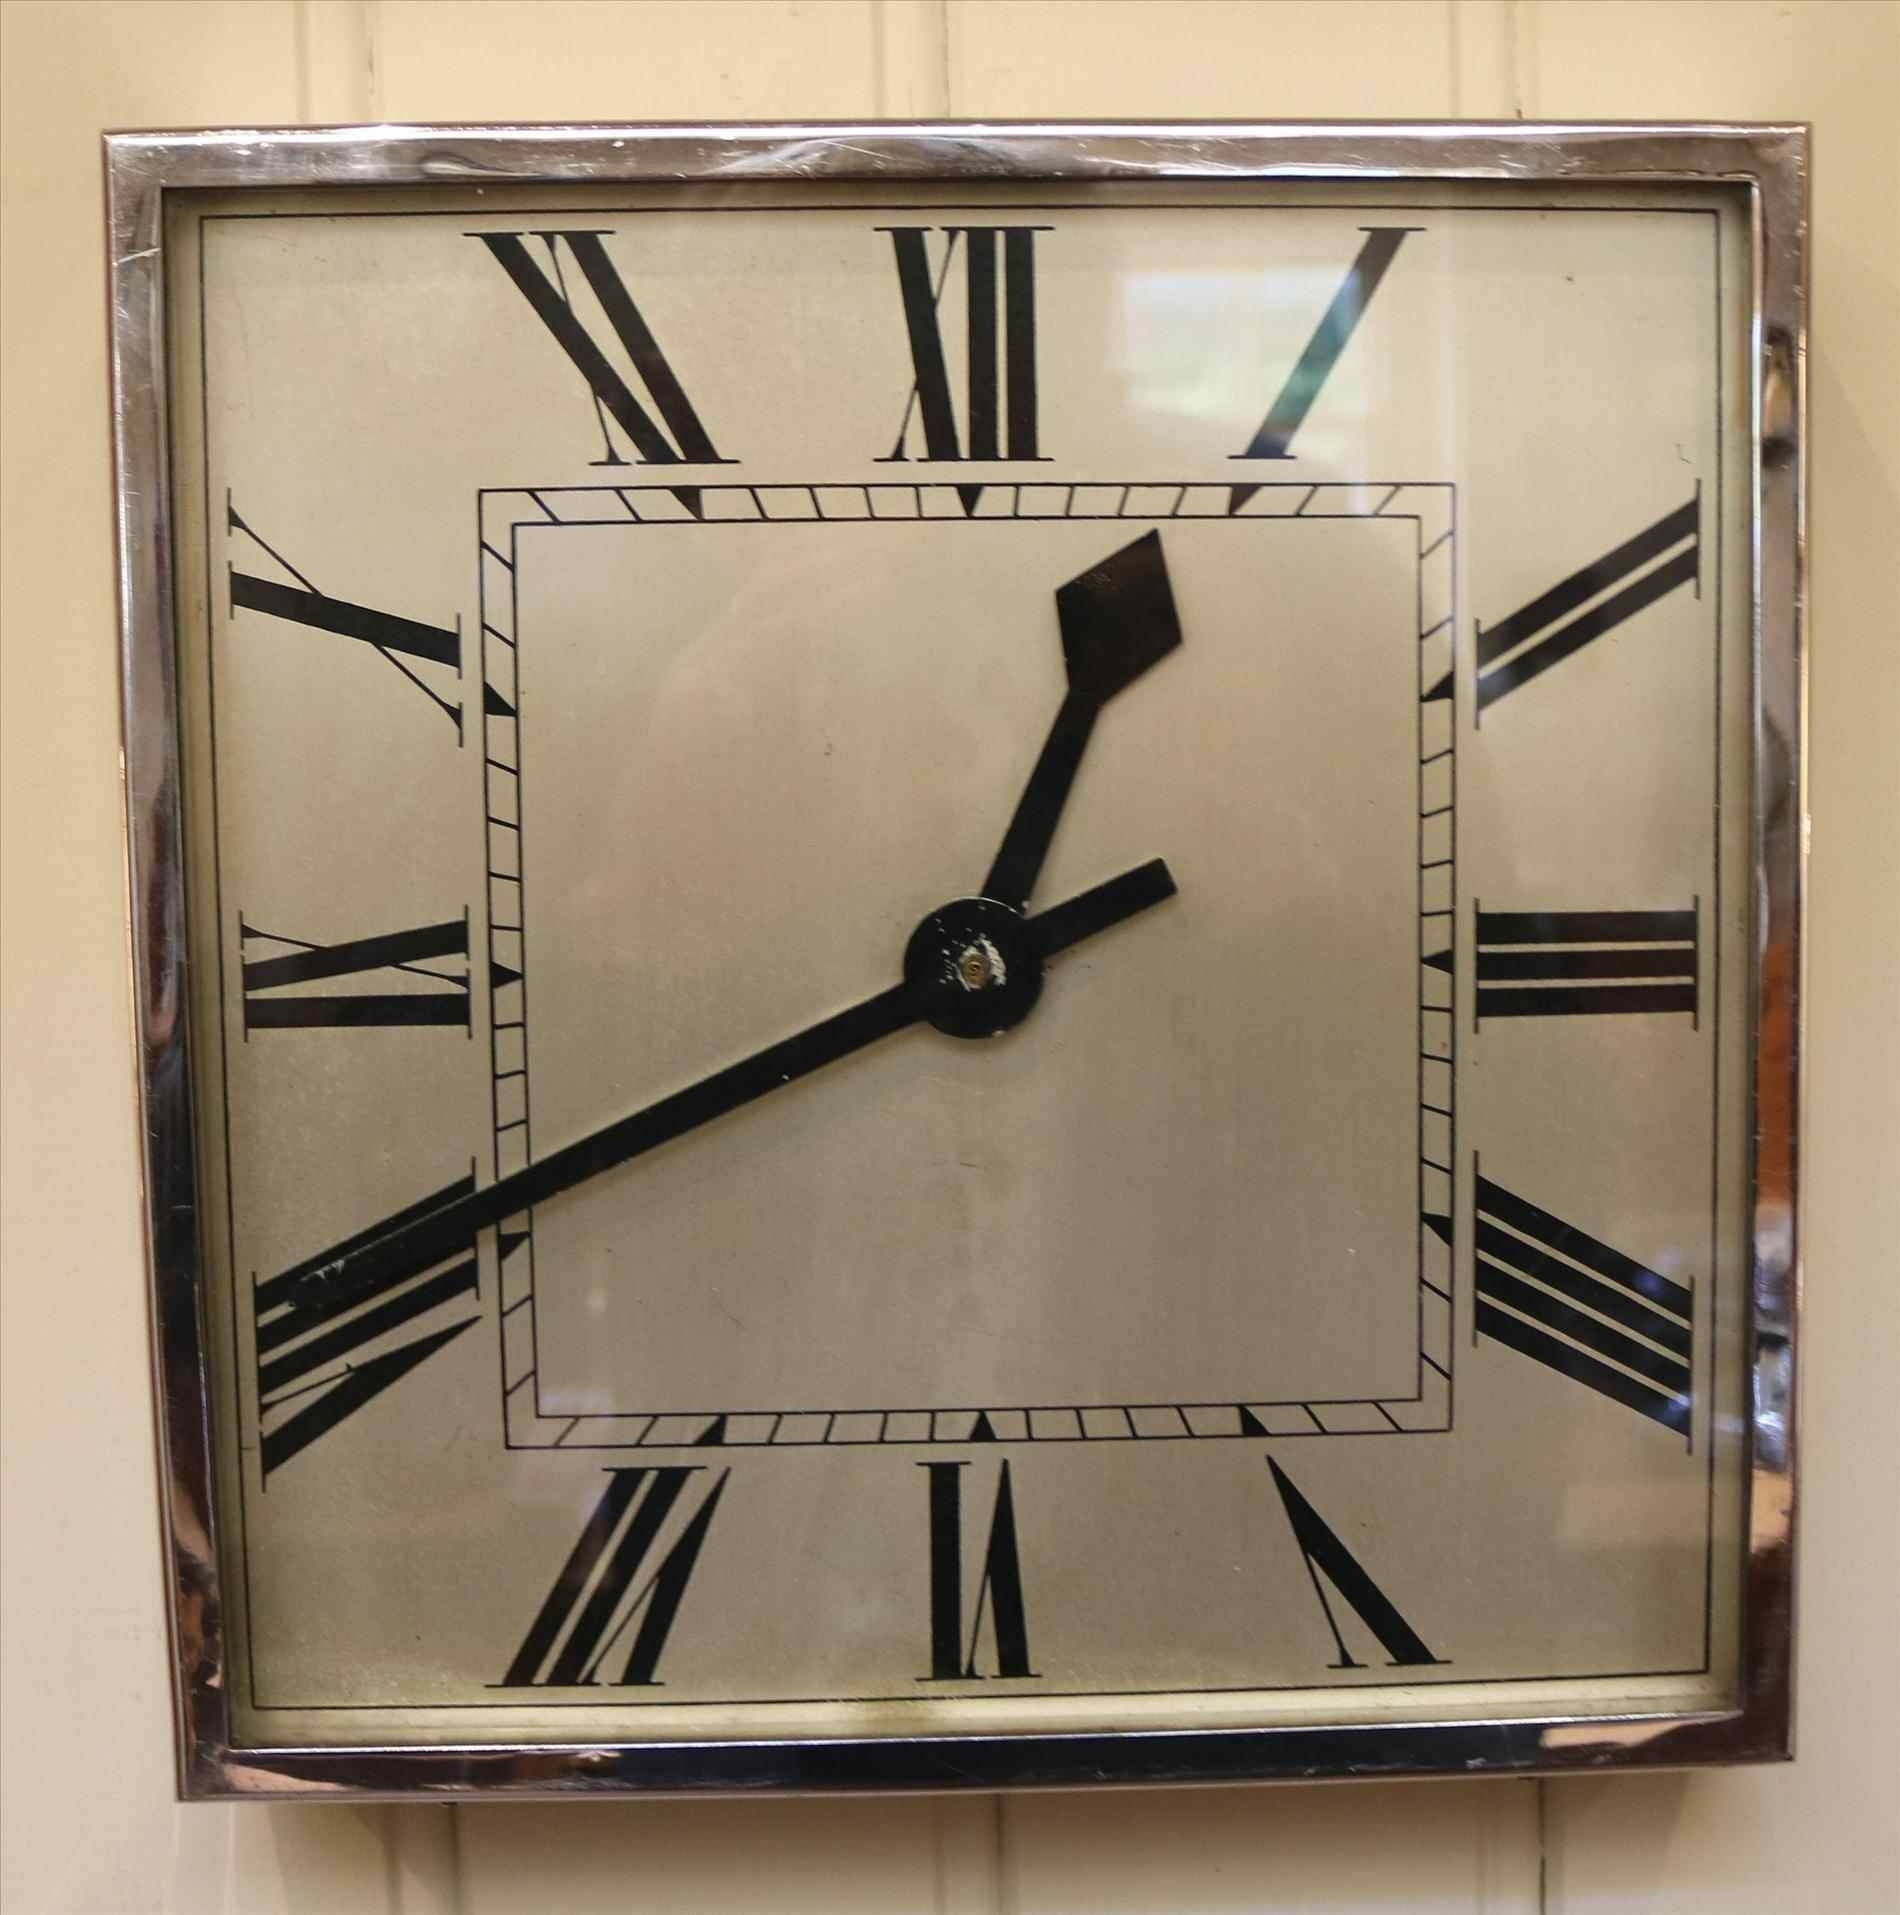 Art Deco Wall Clocks Large | Home Interior Decor Throughout Most Current Large Art Deco Wall Clocks (View 5 of 30)